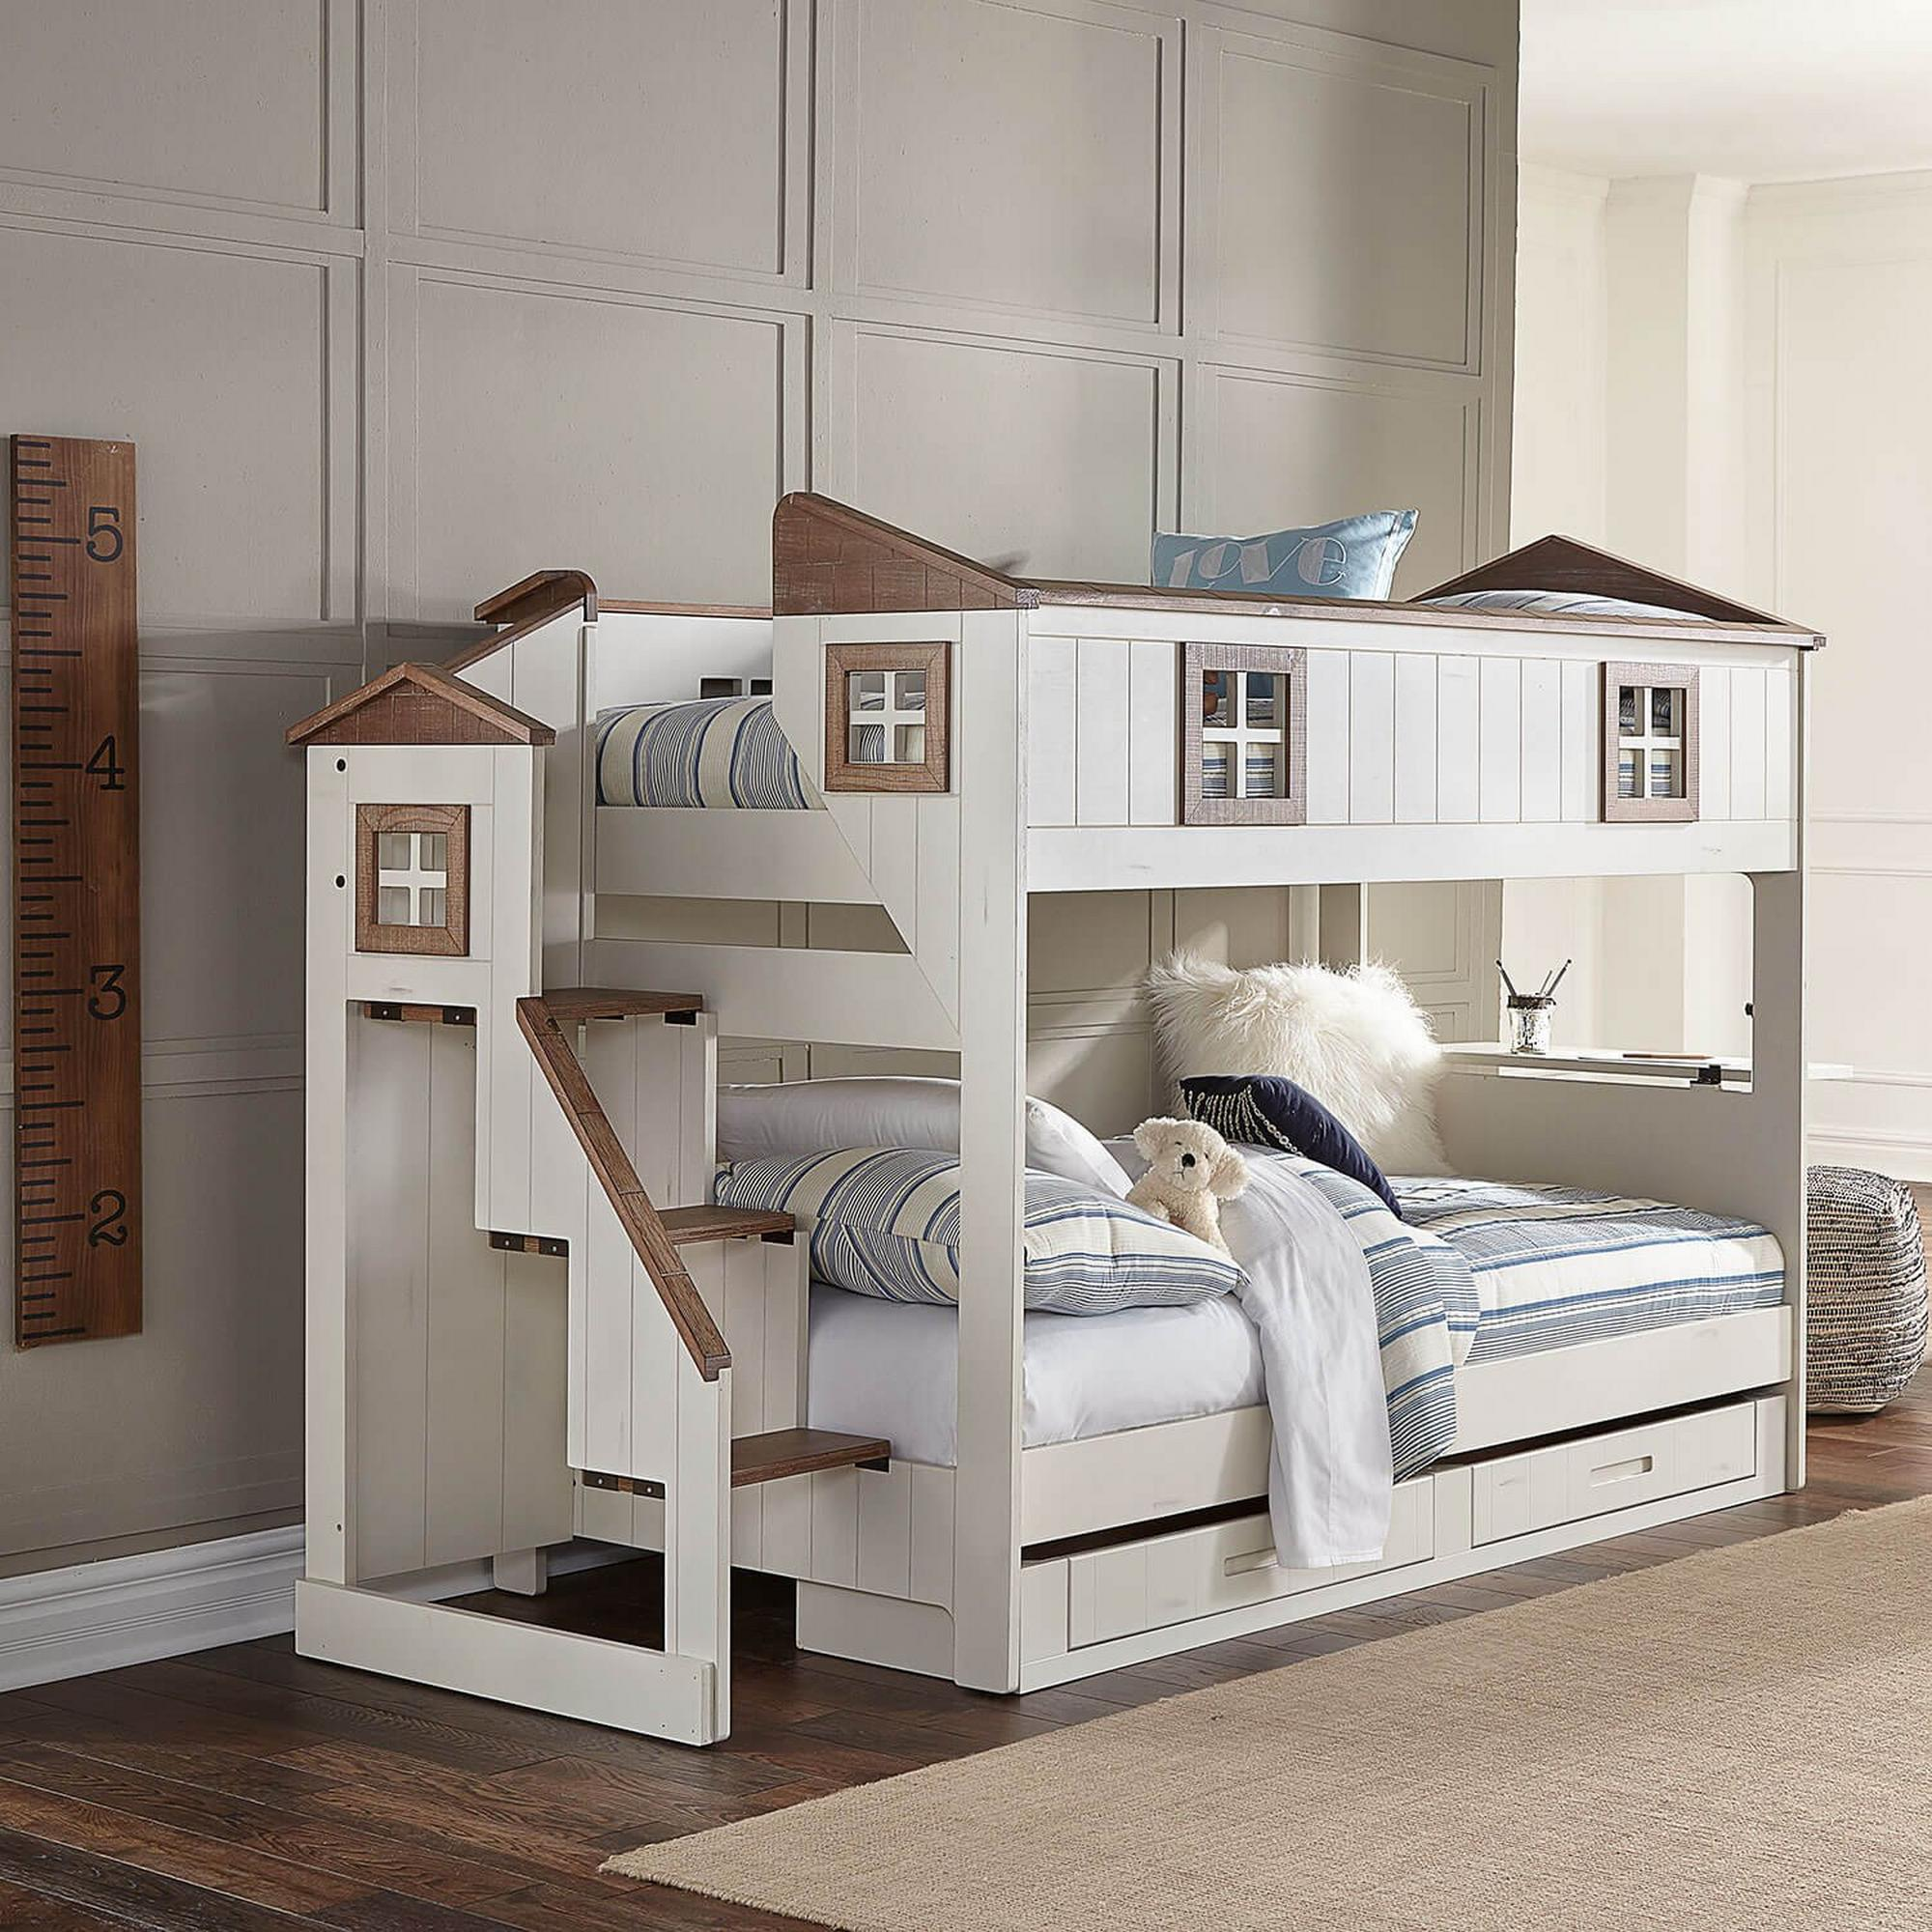 Rent To Own Oak Furniture West Home Sweet Home Twin Over Twin Storage Bunk Bed With Mattresses At Aaron S Today